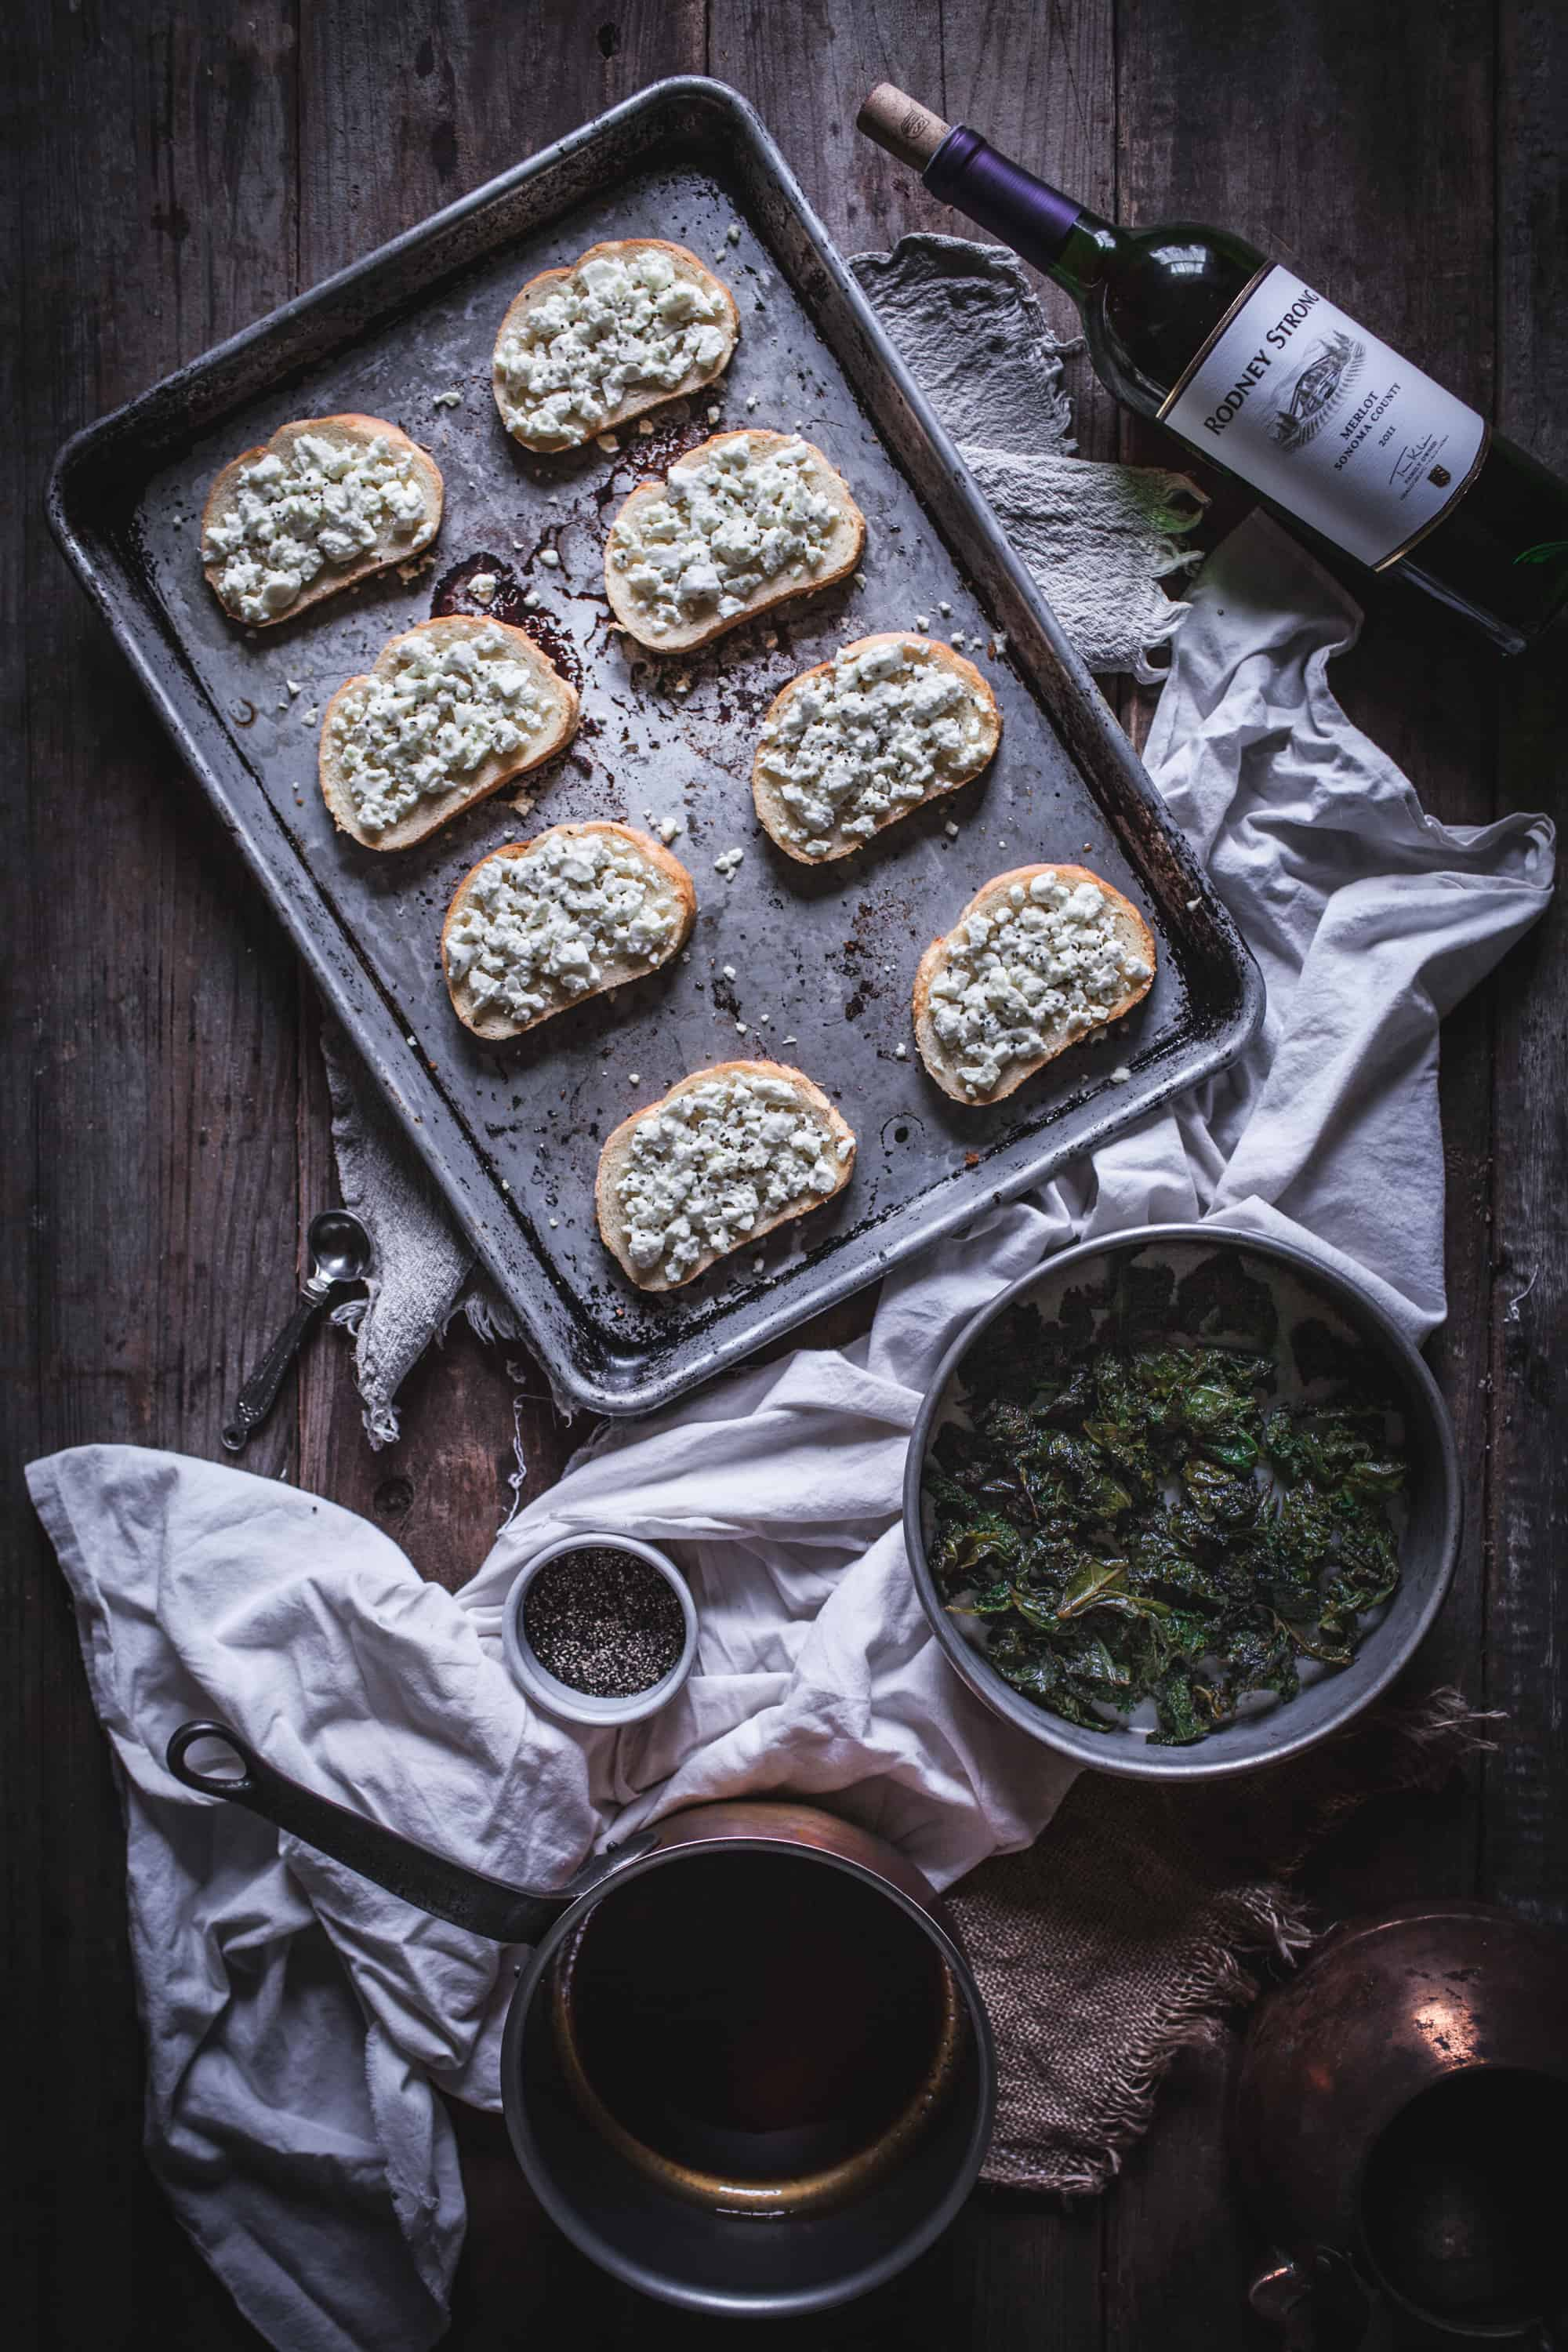 Sautéed Kale and Goat Cheese Crostini with a Balsamic Reduction by Eva Kosmas Flores